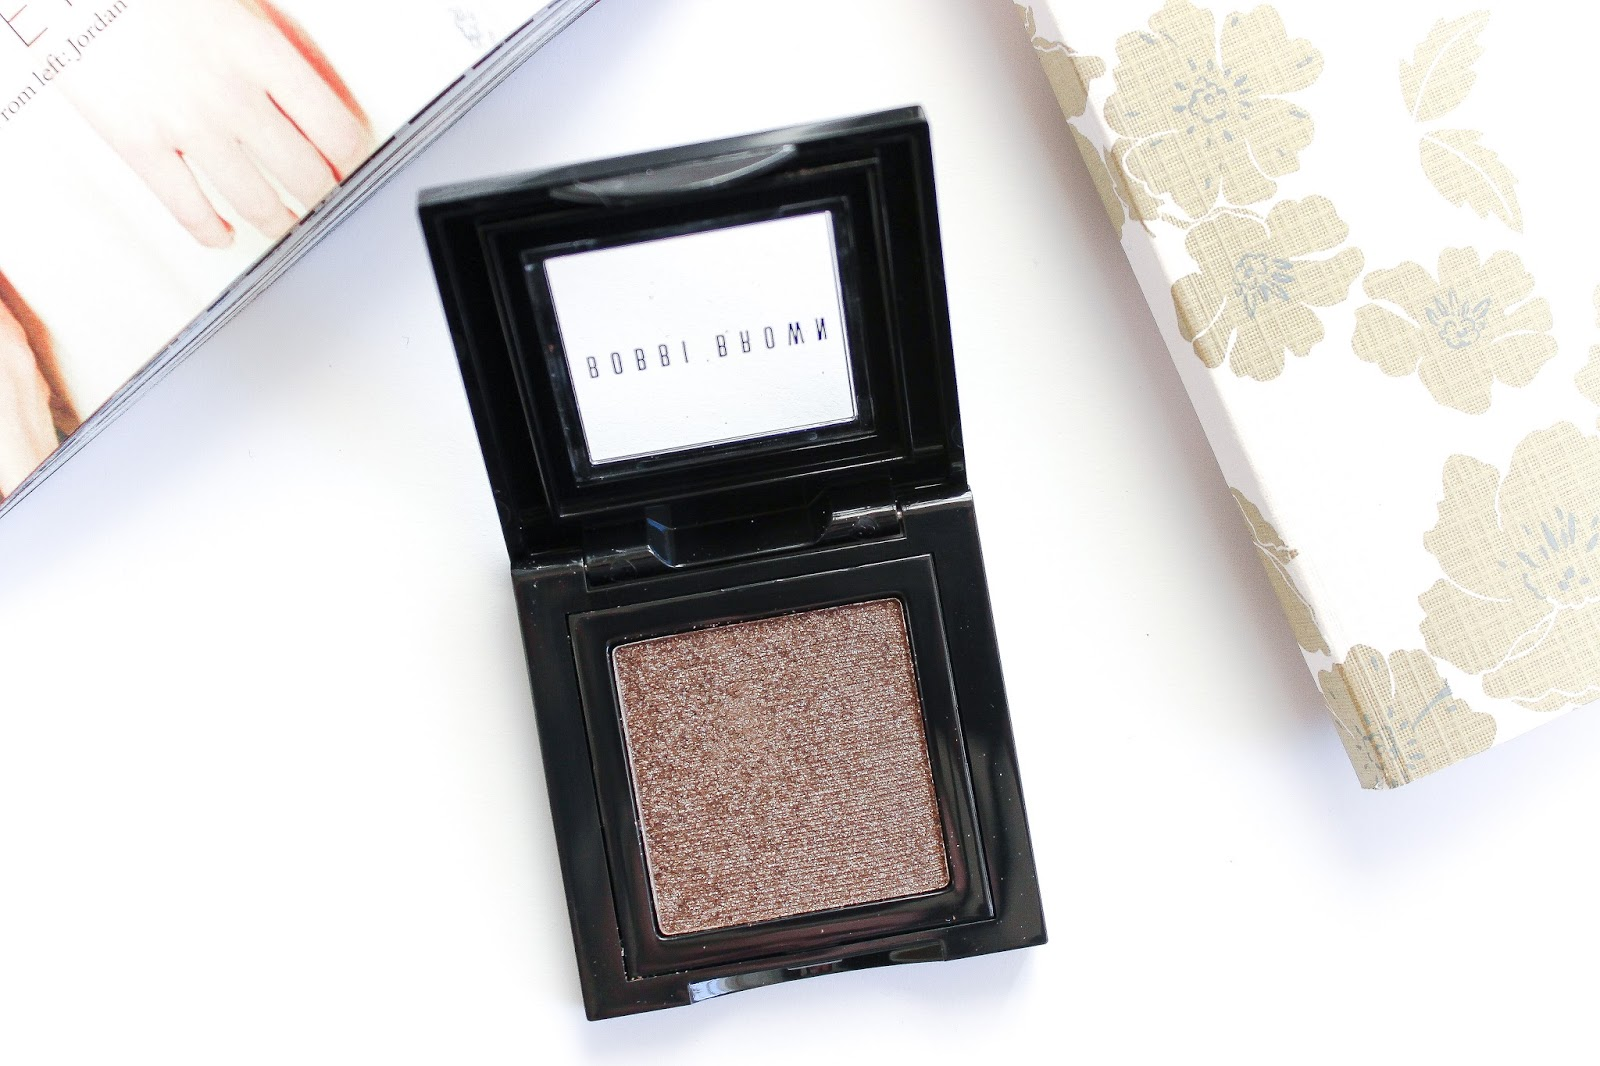 Bobbi Brown Sparkle Eyeshadow in Smokey Quartz